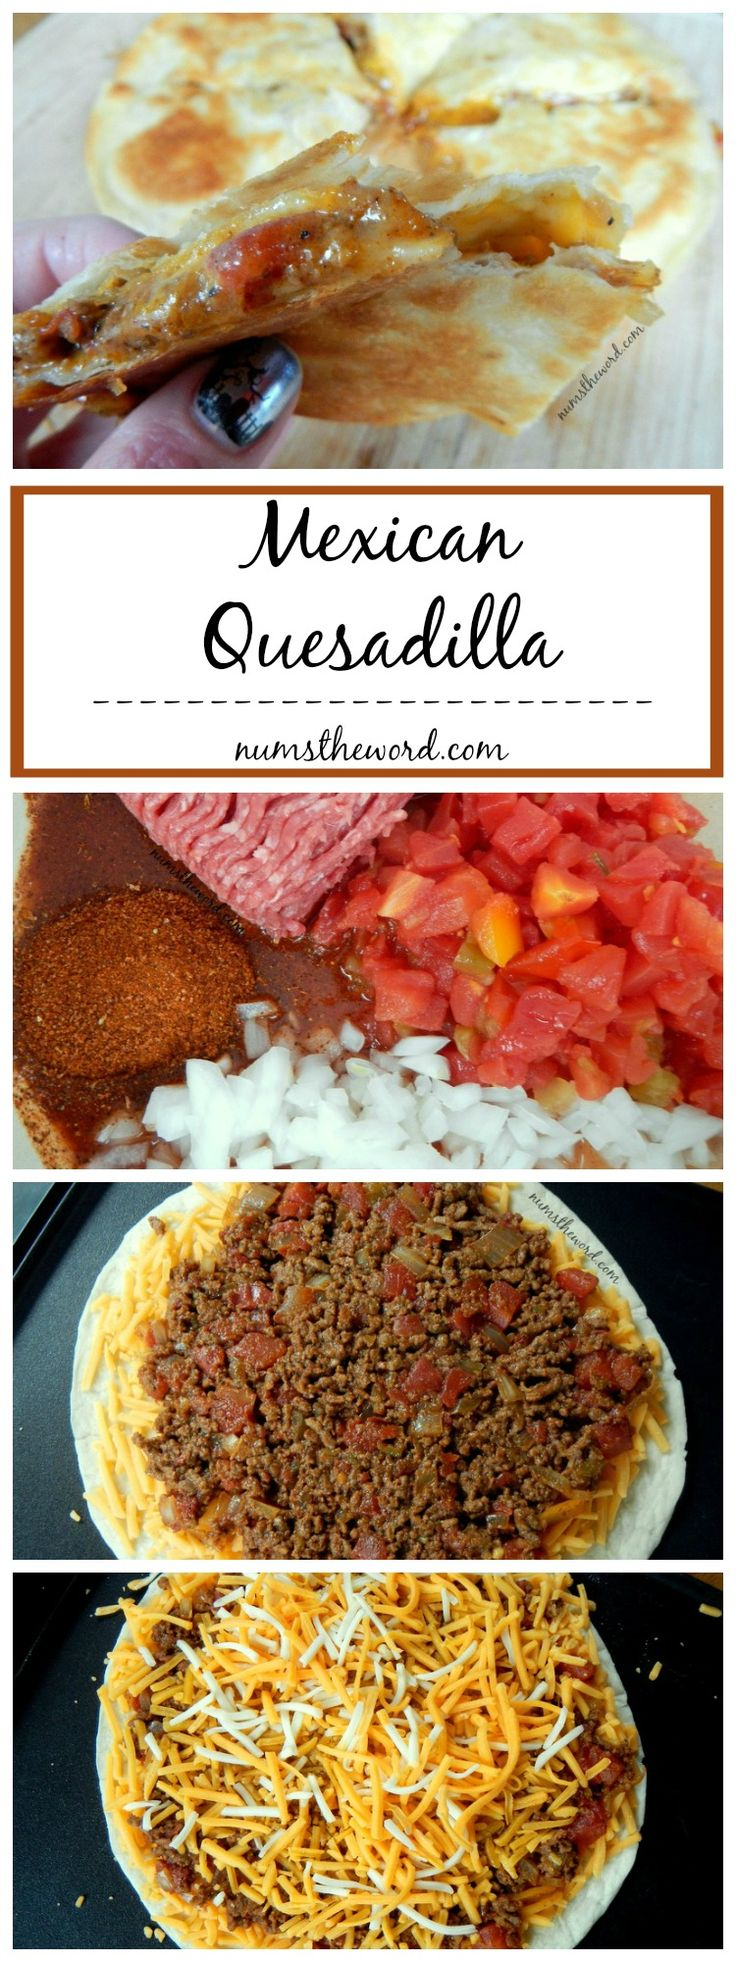 #Mexican #Quesadilla - A tasty twist on the classic quesadilla, this Mexican Quesadilla is hearty enough for a meal and great for on the go with kids! A quick meal for busy nights full of activities!